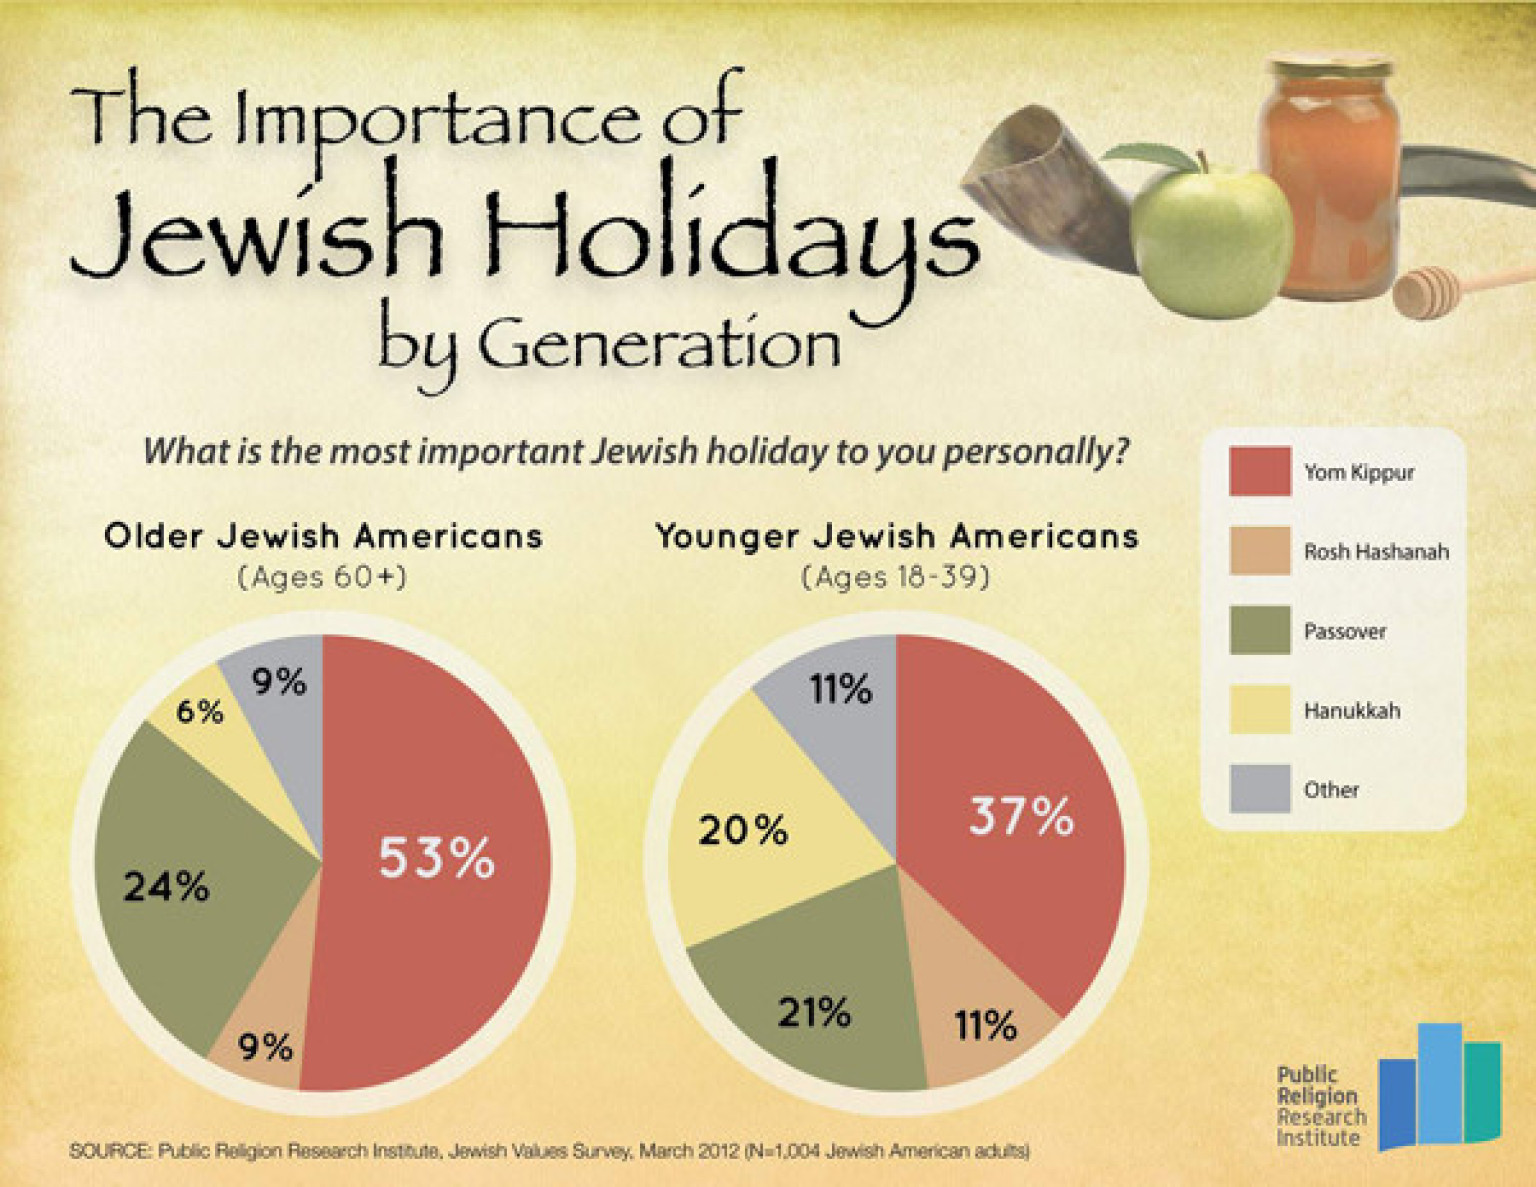 Passover Overtakes Yom Kippur As Most Meaningful Jewish